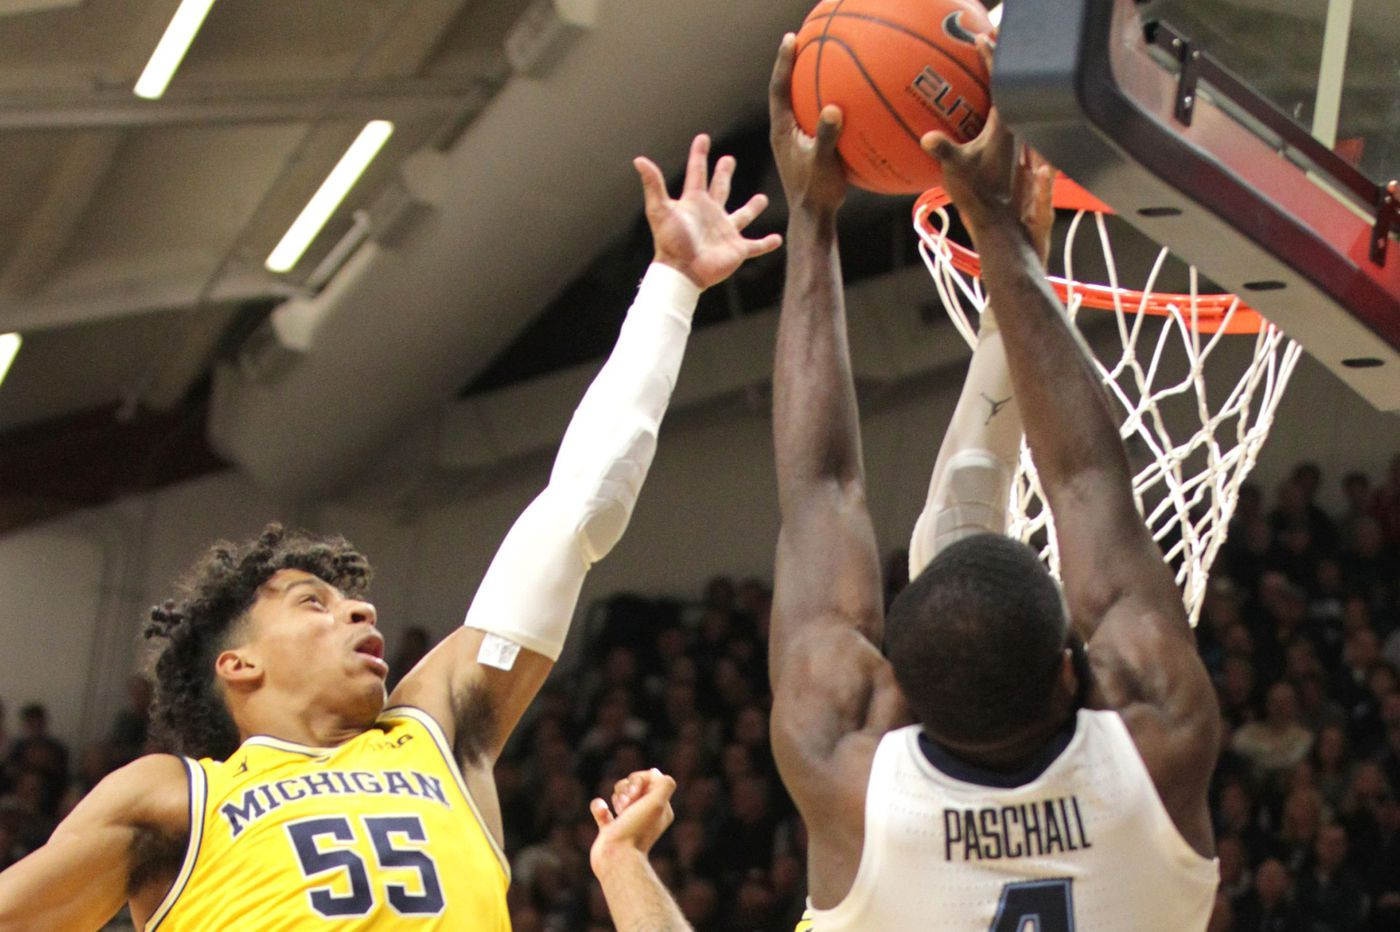 Villanova stunned, 73-46, by Michigan in rematch